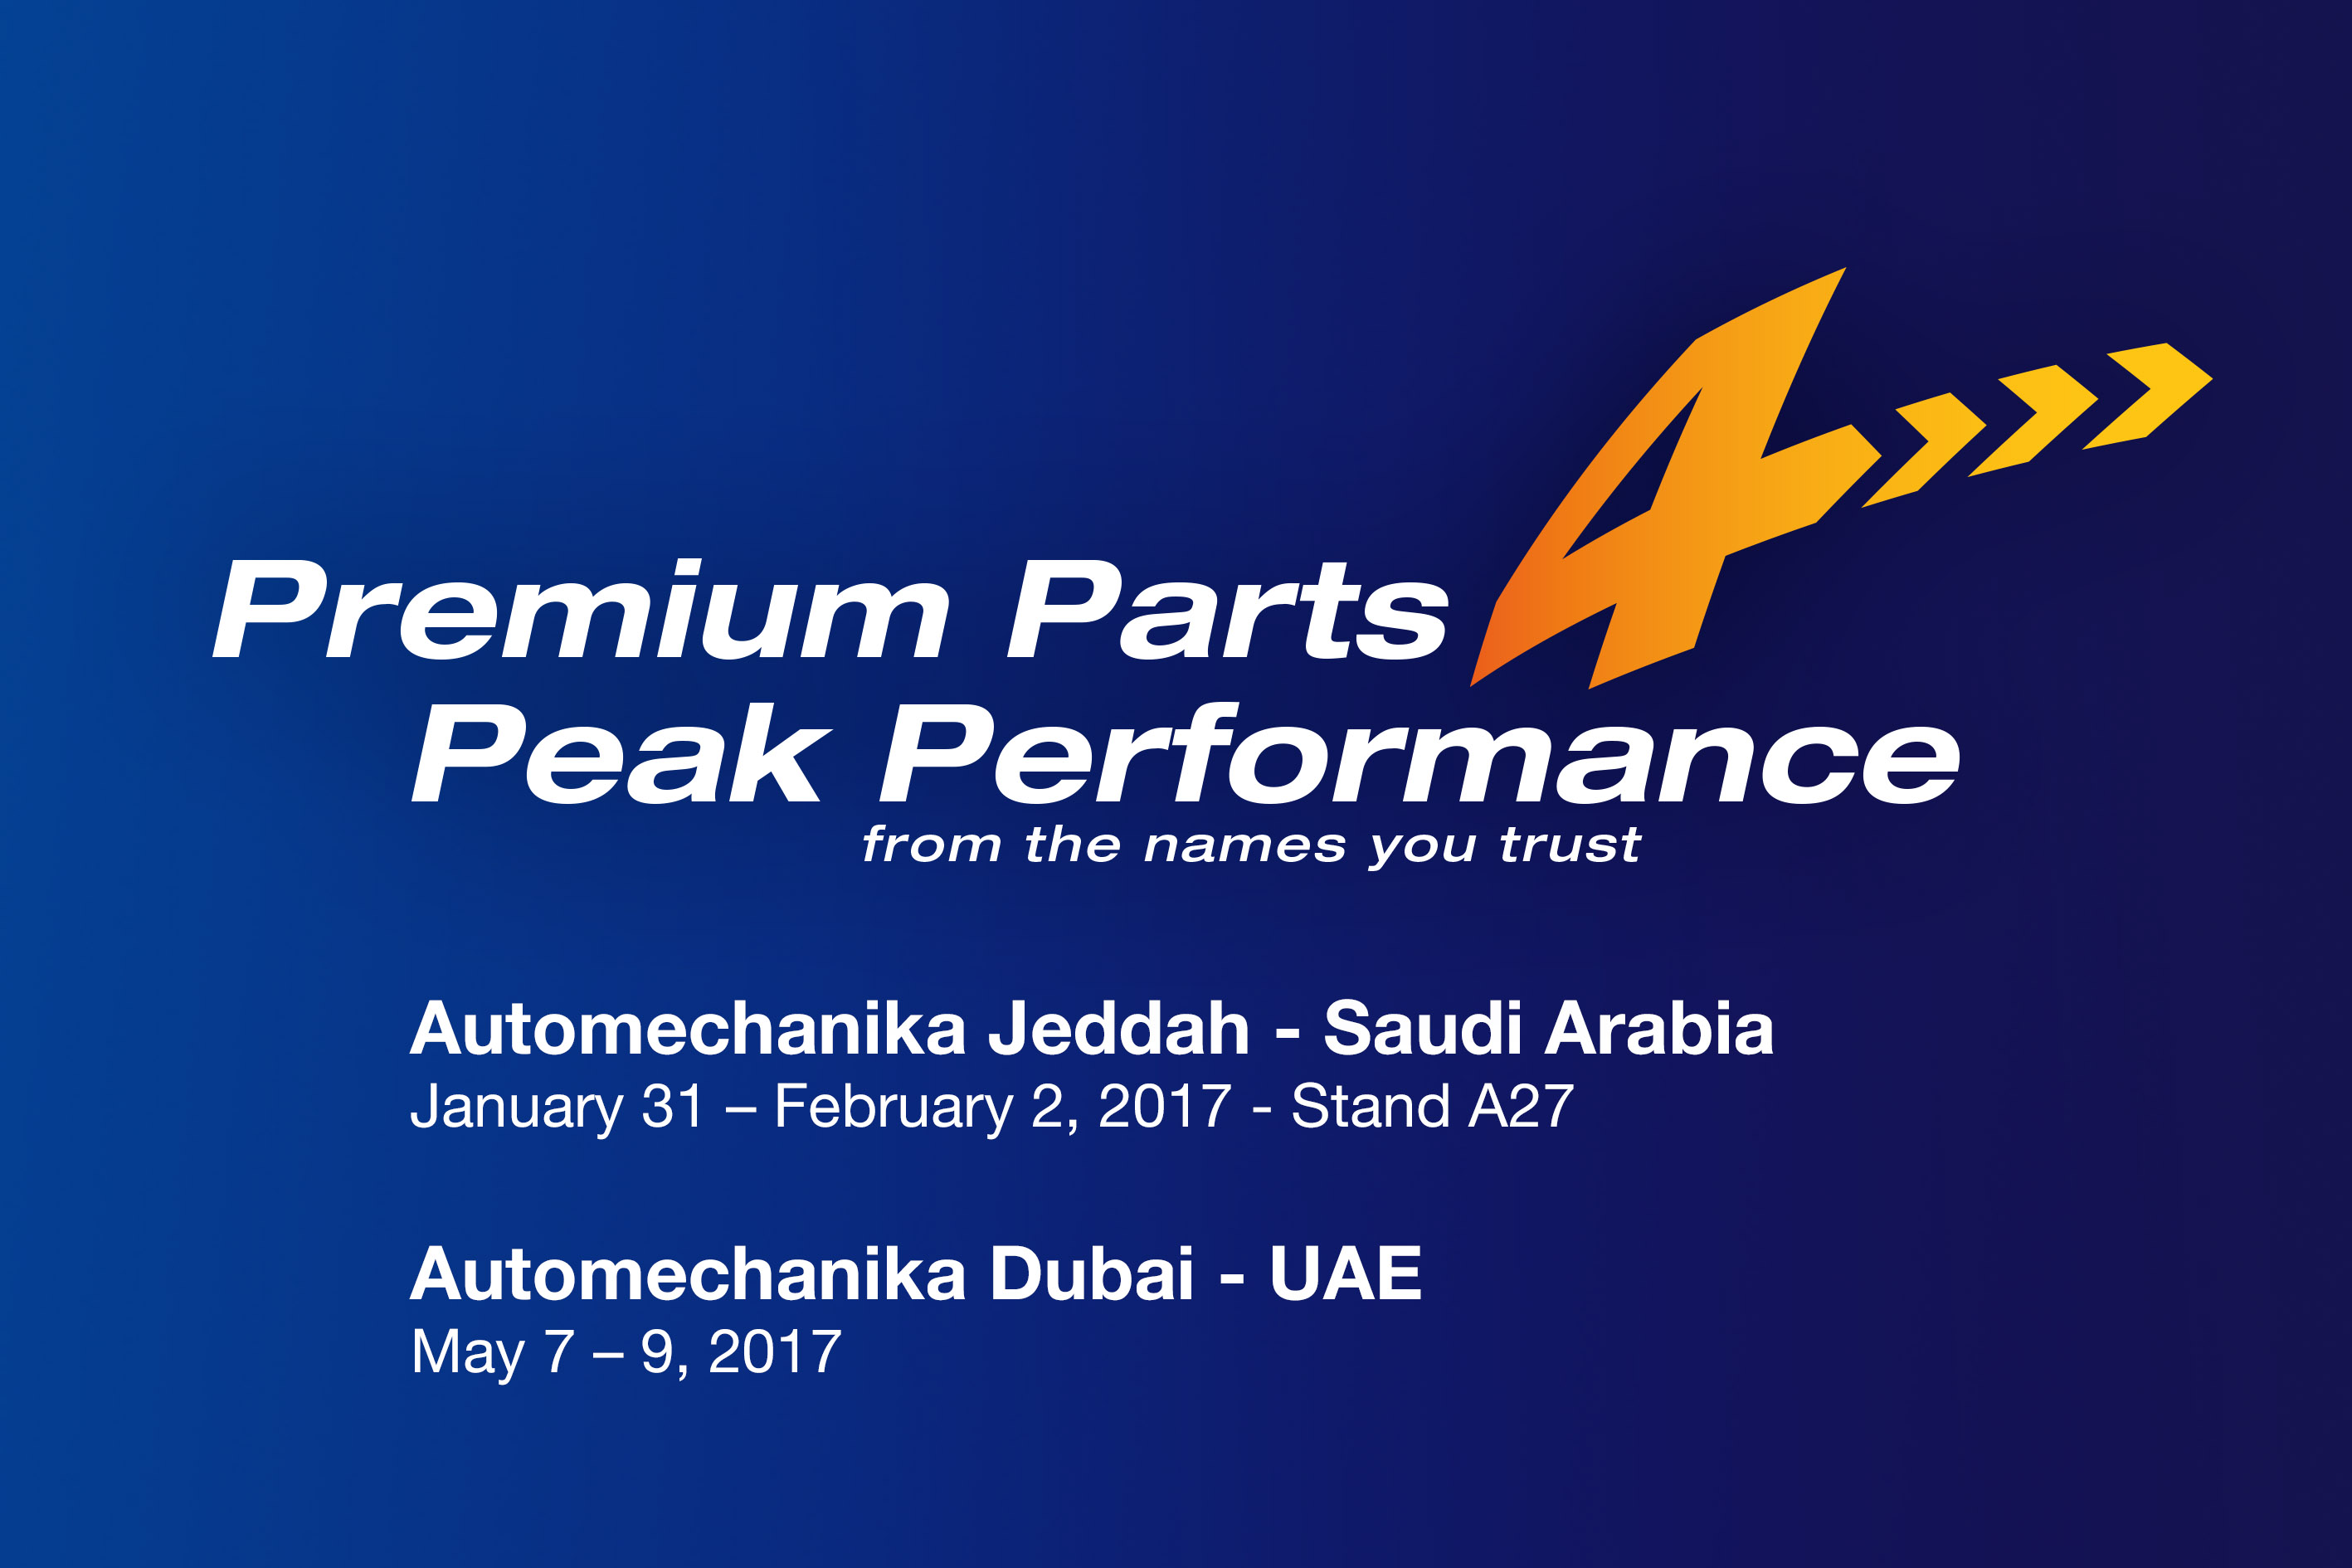 Tailored for the aftermarket product development and